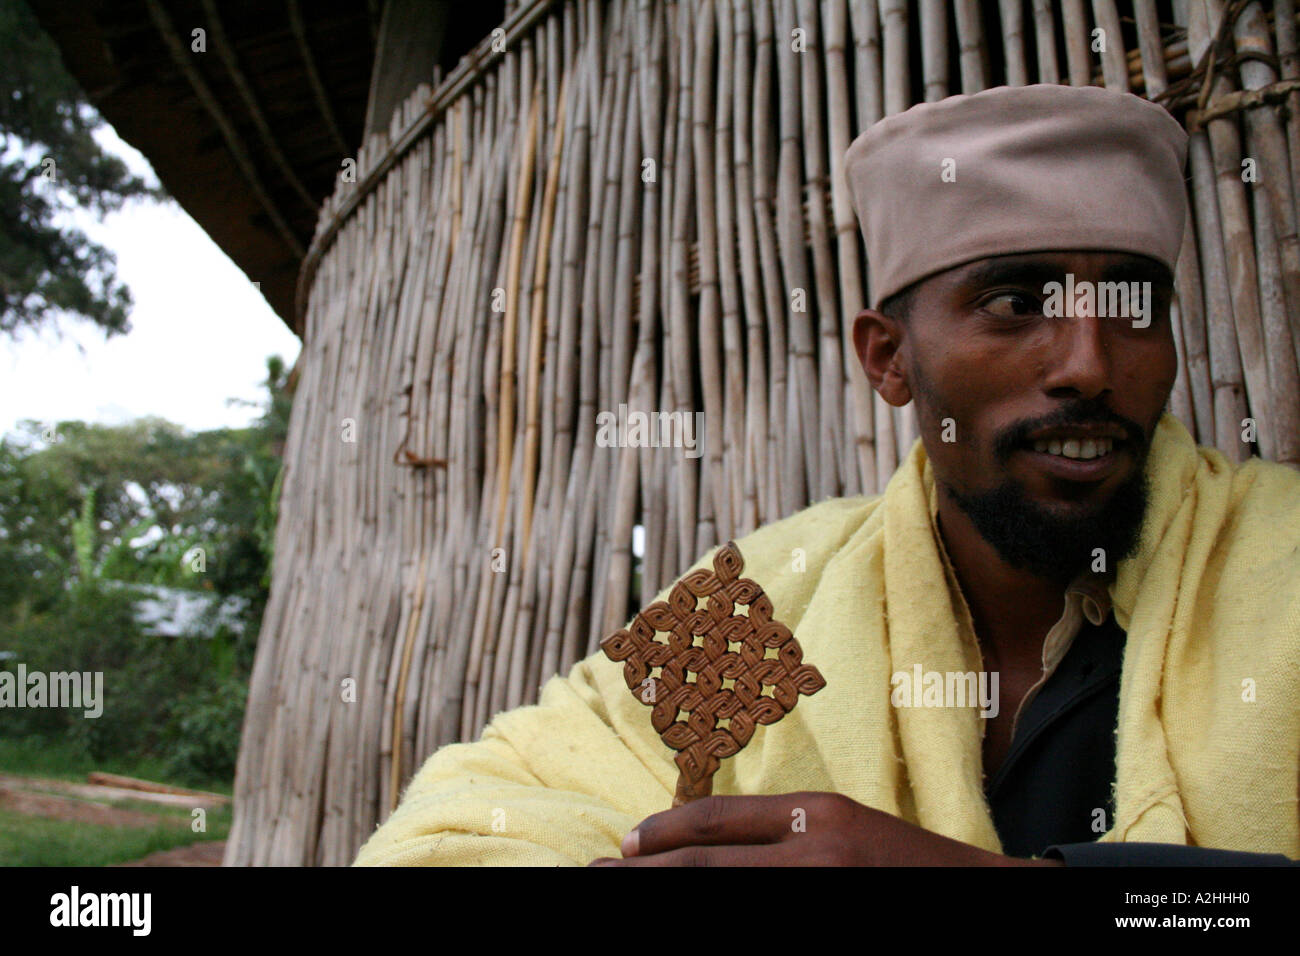 A priest sits outside Ura Kidane Meret, one of the island   Monasteries in Lake Tana, Bahar Dar, Ethiopia - Stock Image